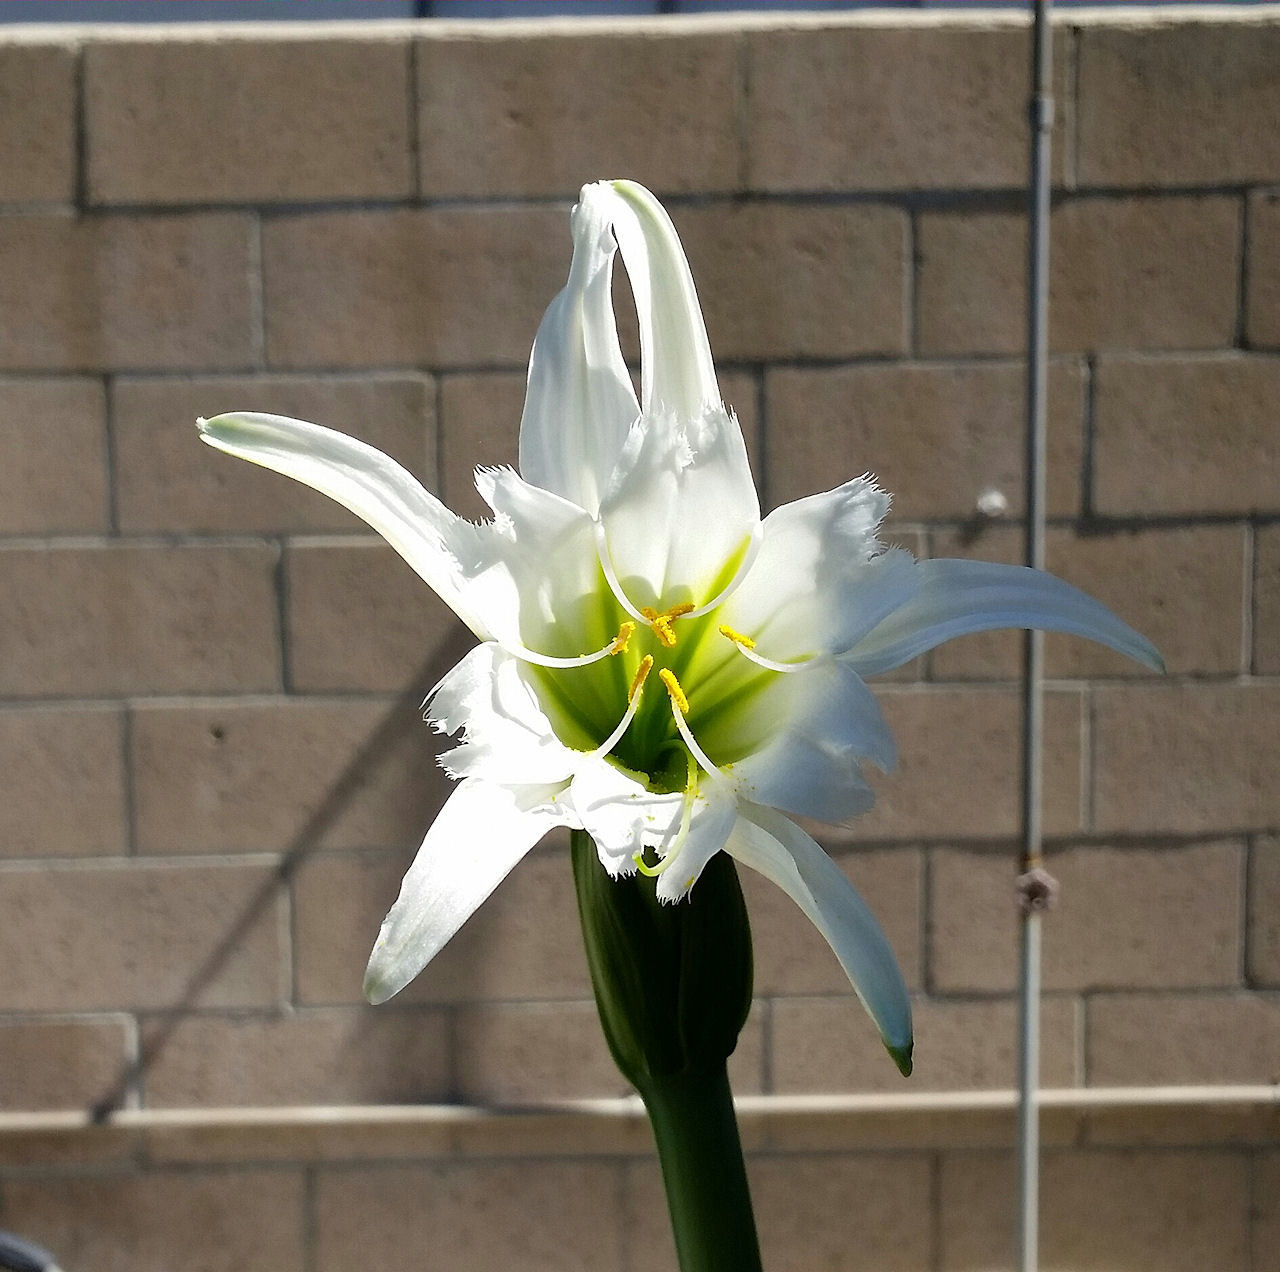 White lily. by bebopdlx